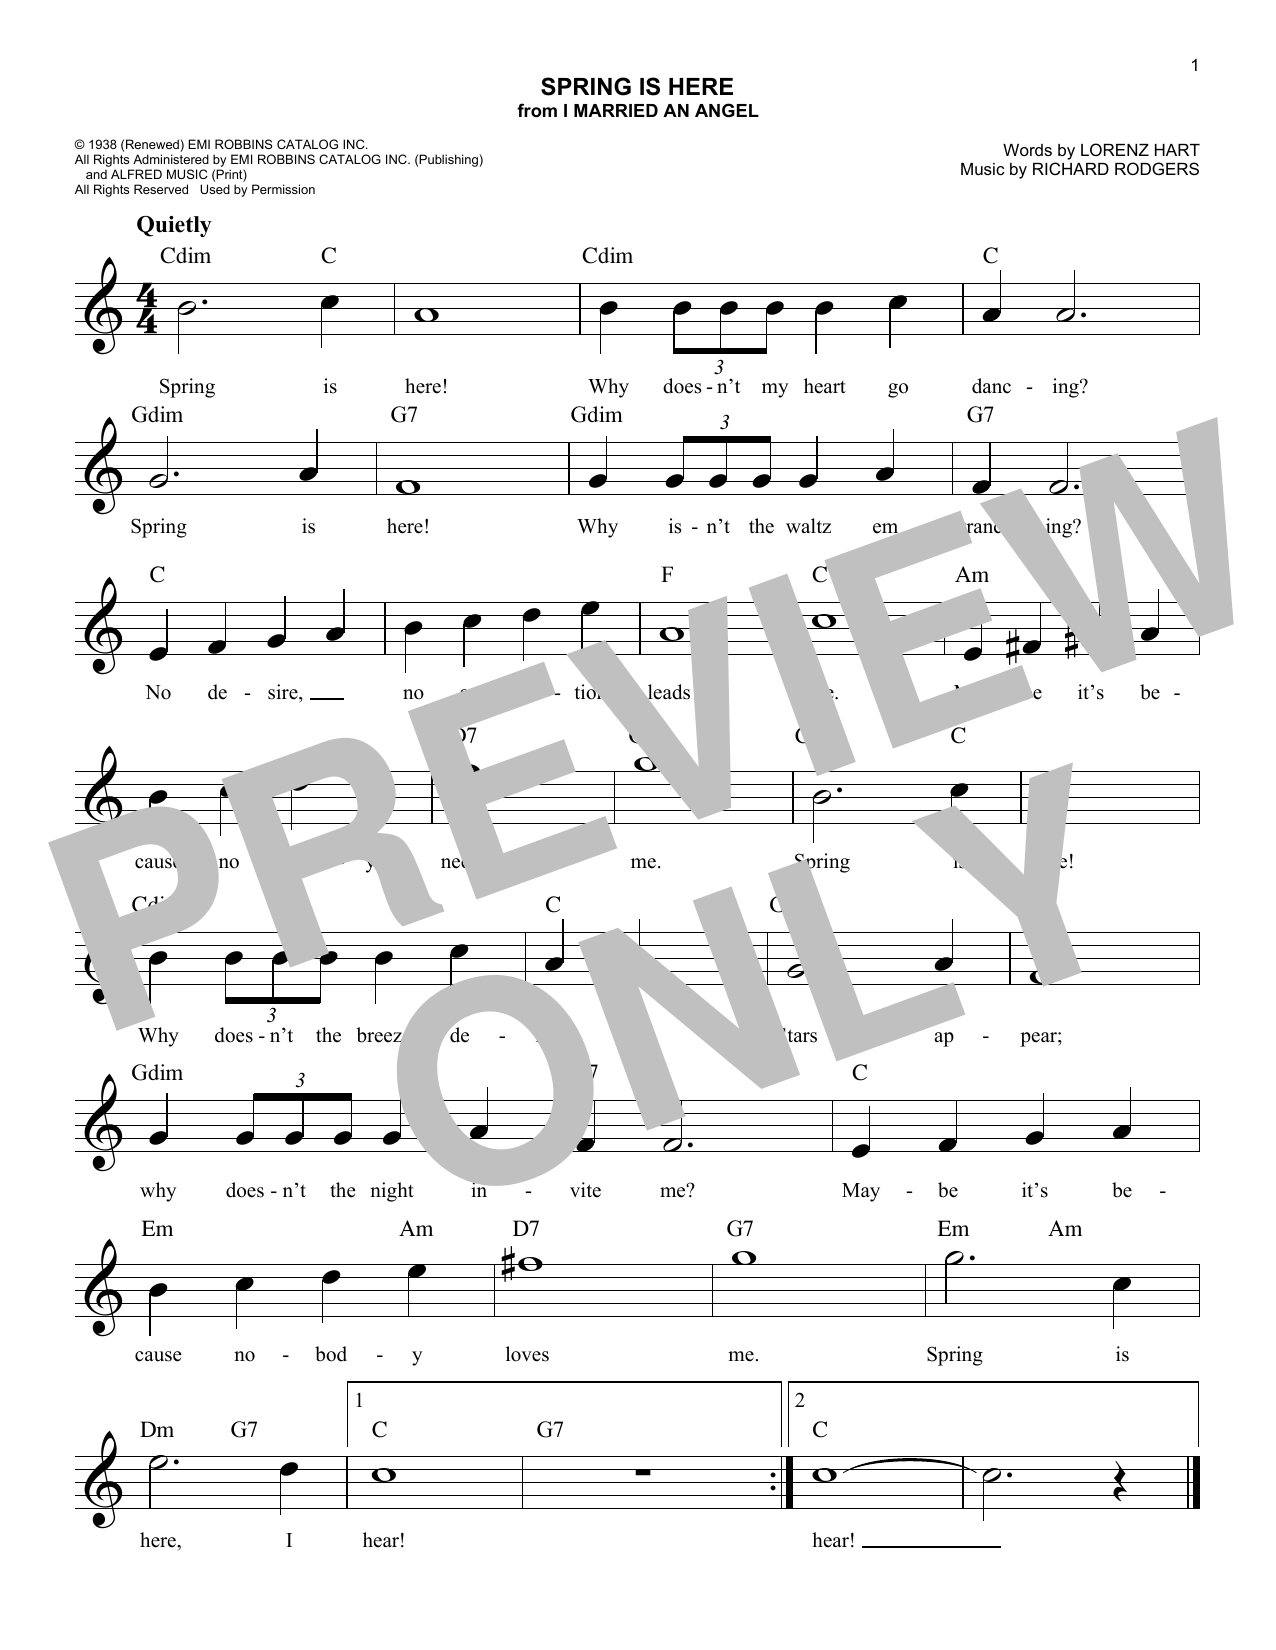 Richard Rodgers Spring Is Here sheet music notes and chords. Download Printable PDF.